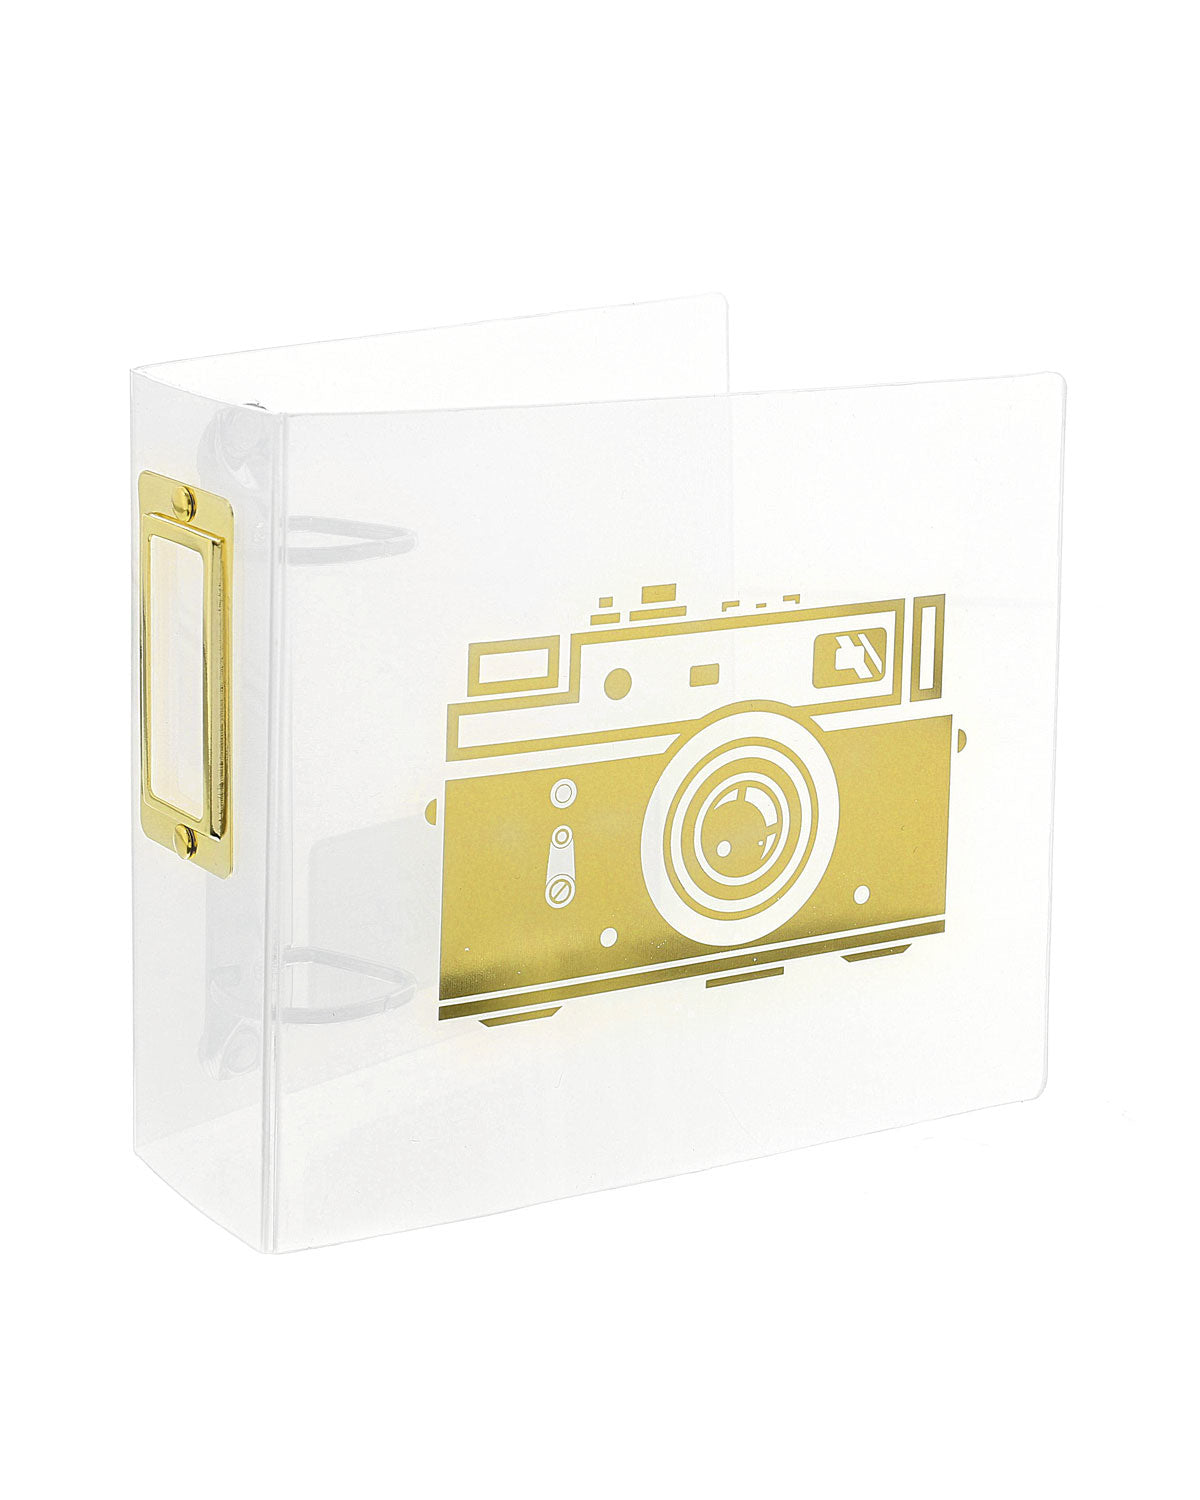 "Photo Gallery 4"" x 4"" Camera Photo Album"